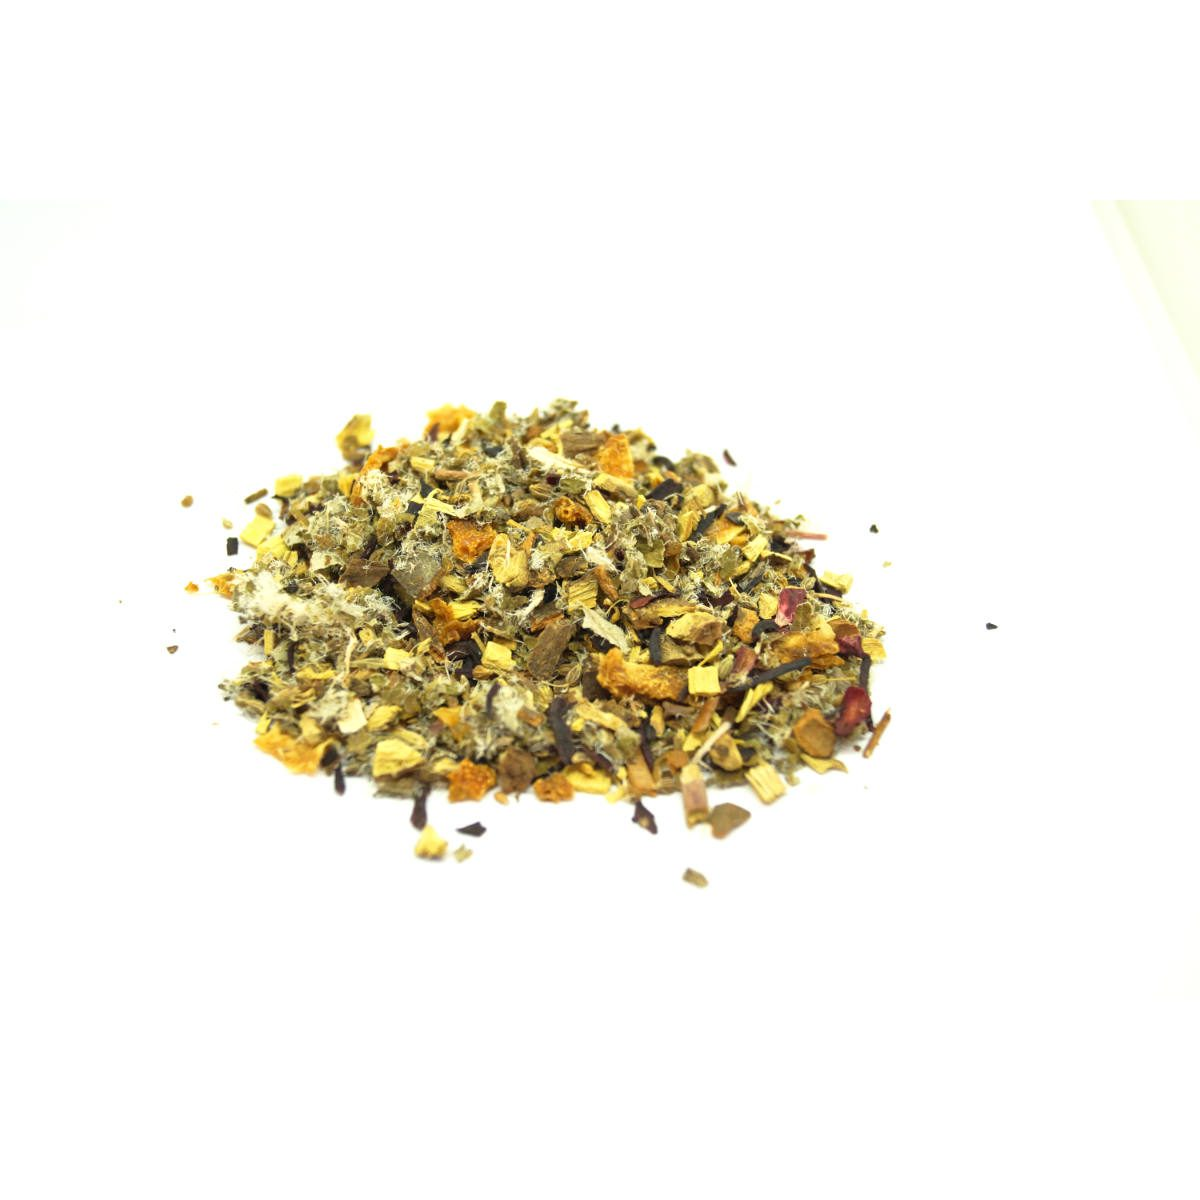 Throat Therapy herbs helps to soothe those itchy and scratchy throats that comes from being sick or allergies and even singing!